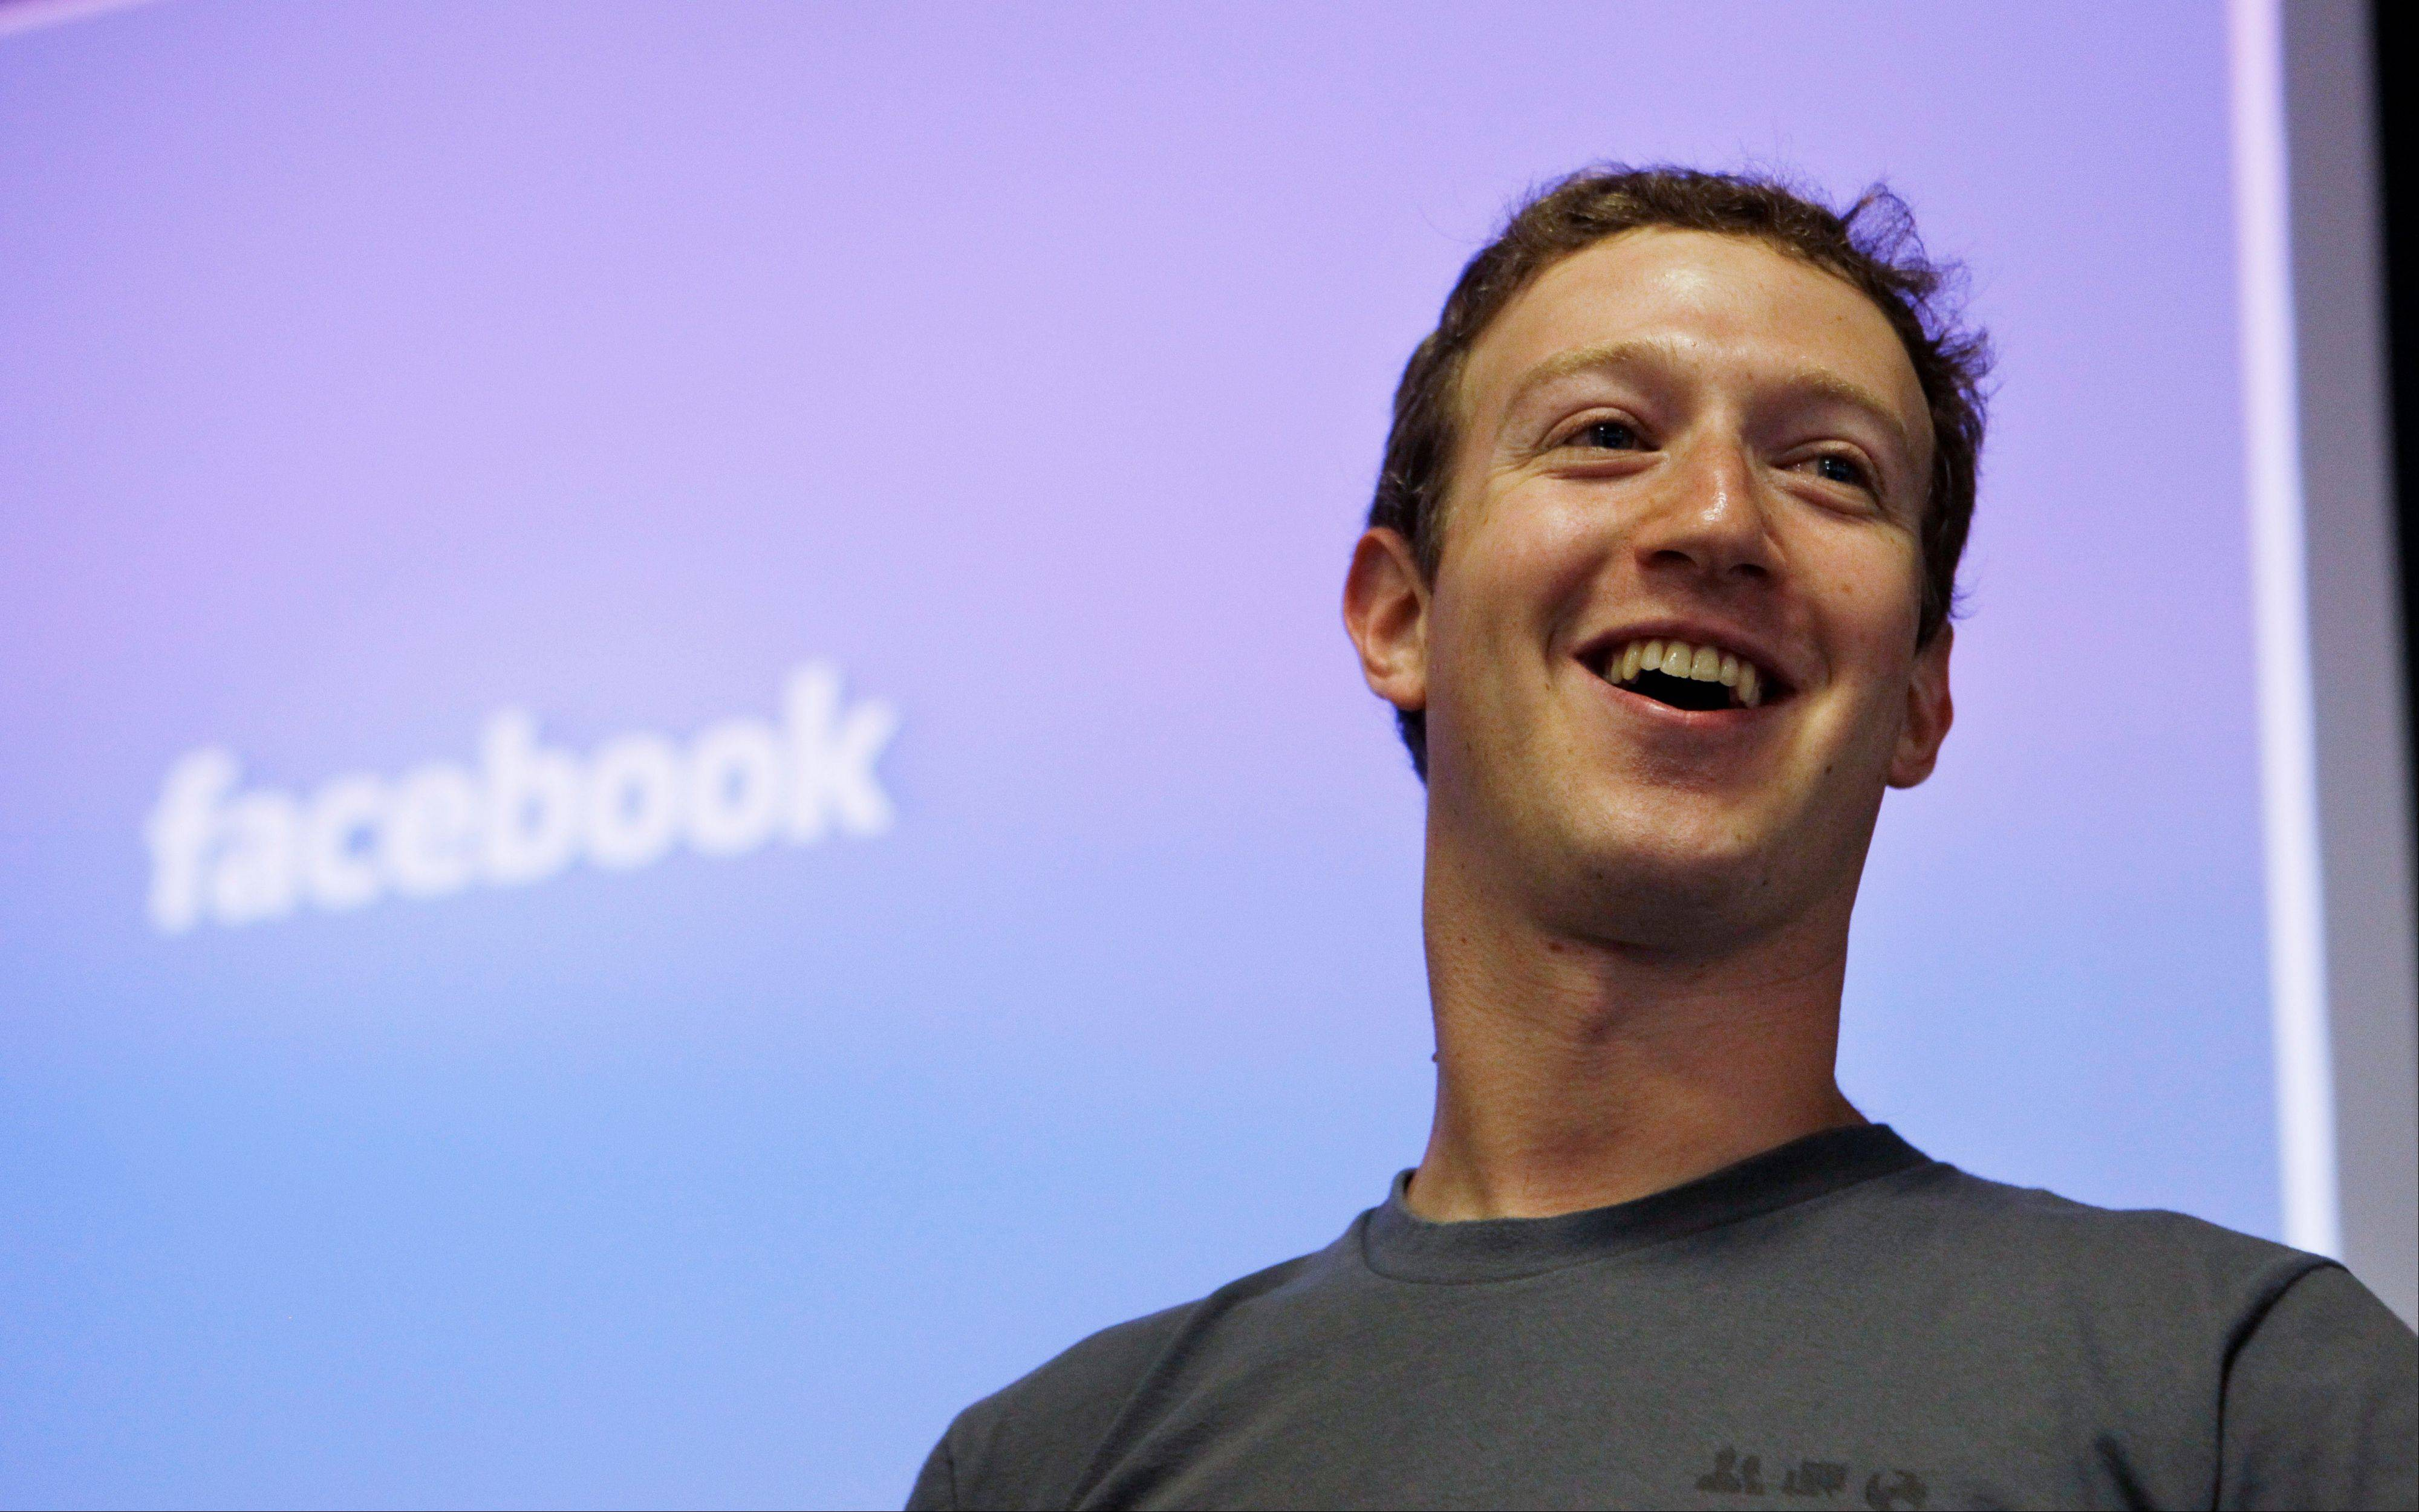 ASSOCIATED PRESS Facebook Inc. Chief Executive Officer Mark Zuckerberg, seeking to boost advertising sales from mobile devices, discussed potential partnerships with Samsung Electronics Co., according to the head of the South Korean company�s handset division.